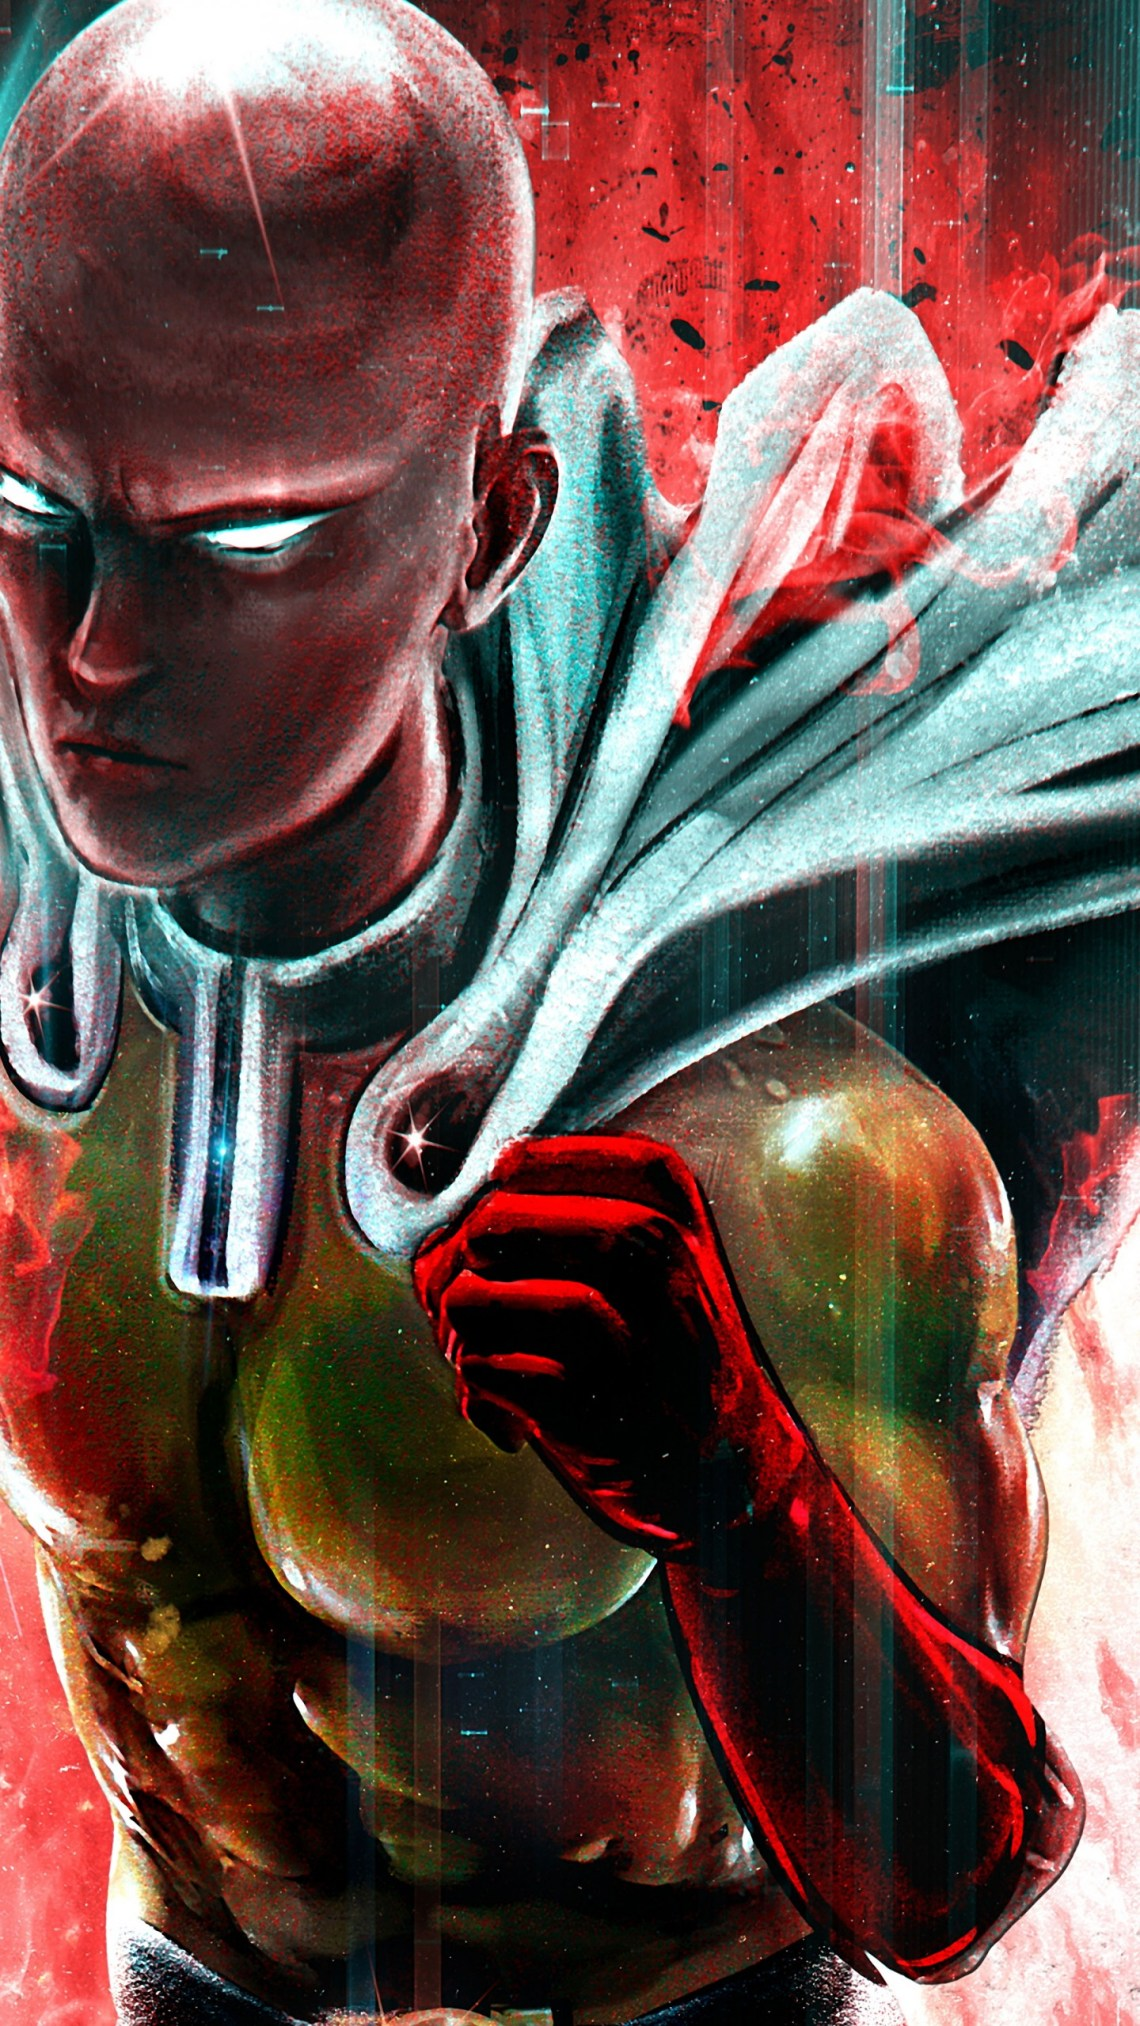 Anime One Punch Man Wallpaper One Punch Man Wallpaper 4k 1440x2560 Download Hd Wallpaper Wallpapertip